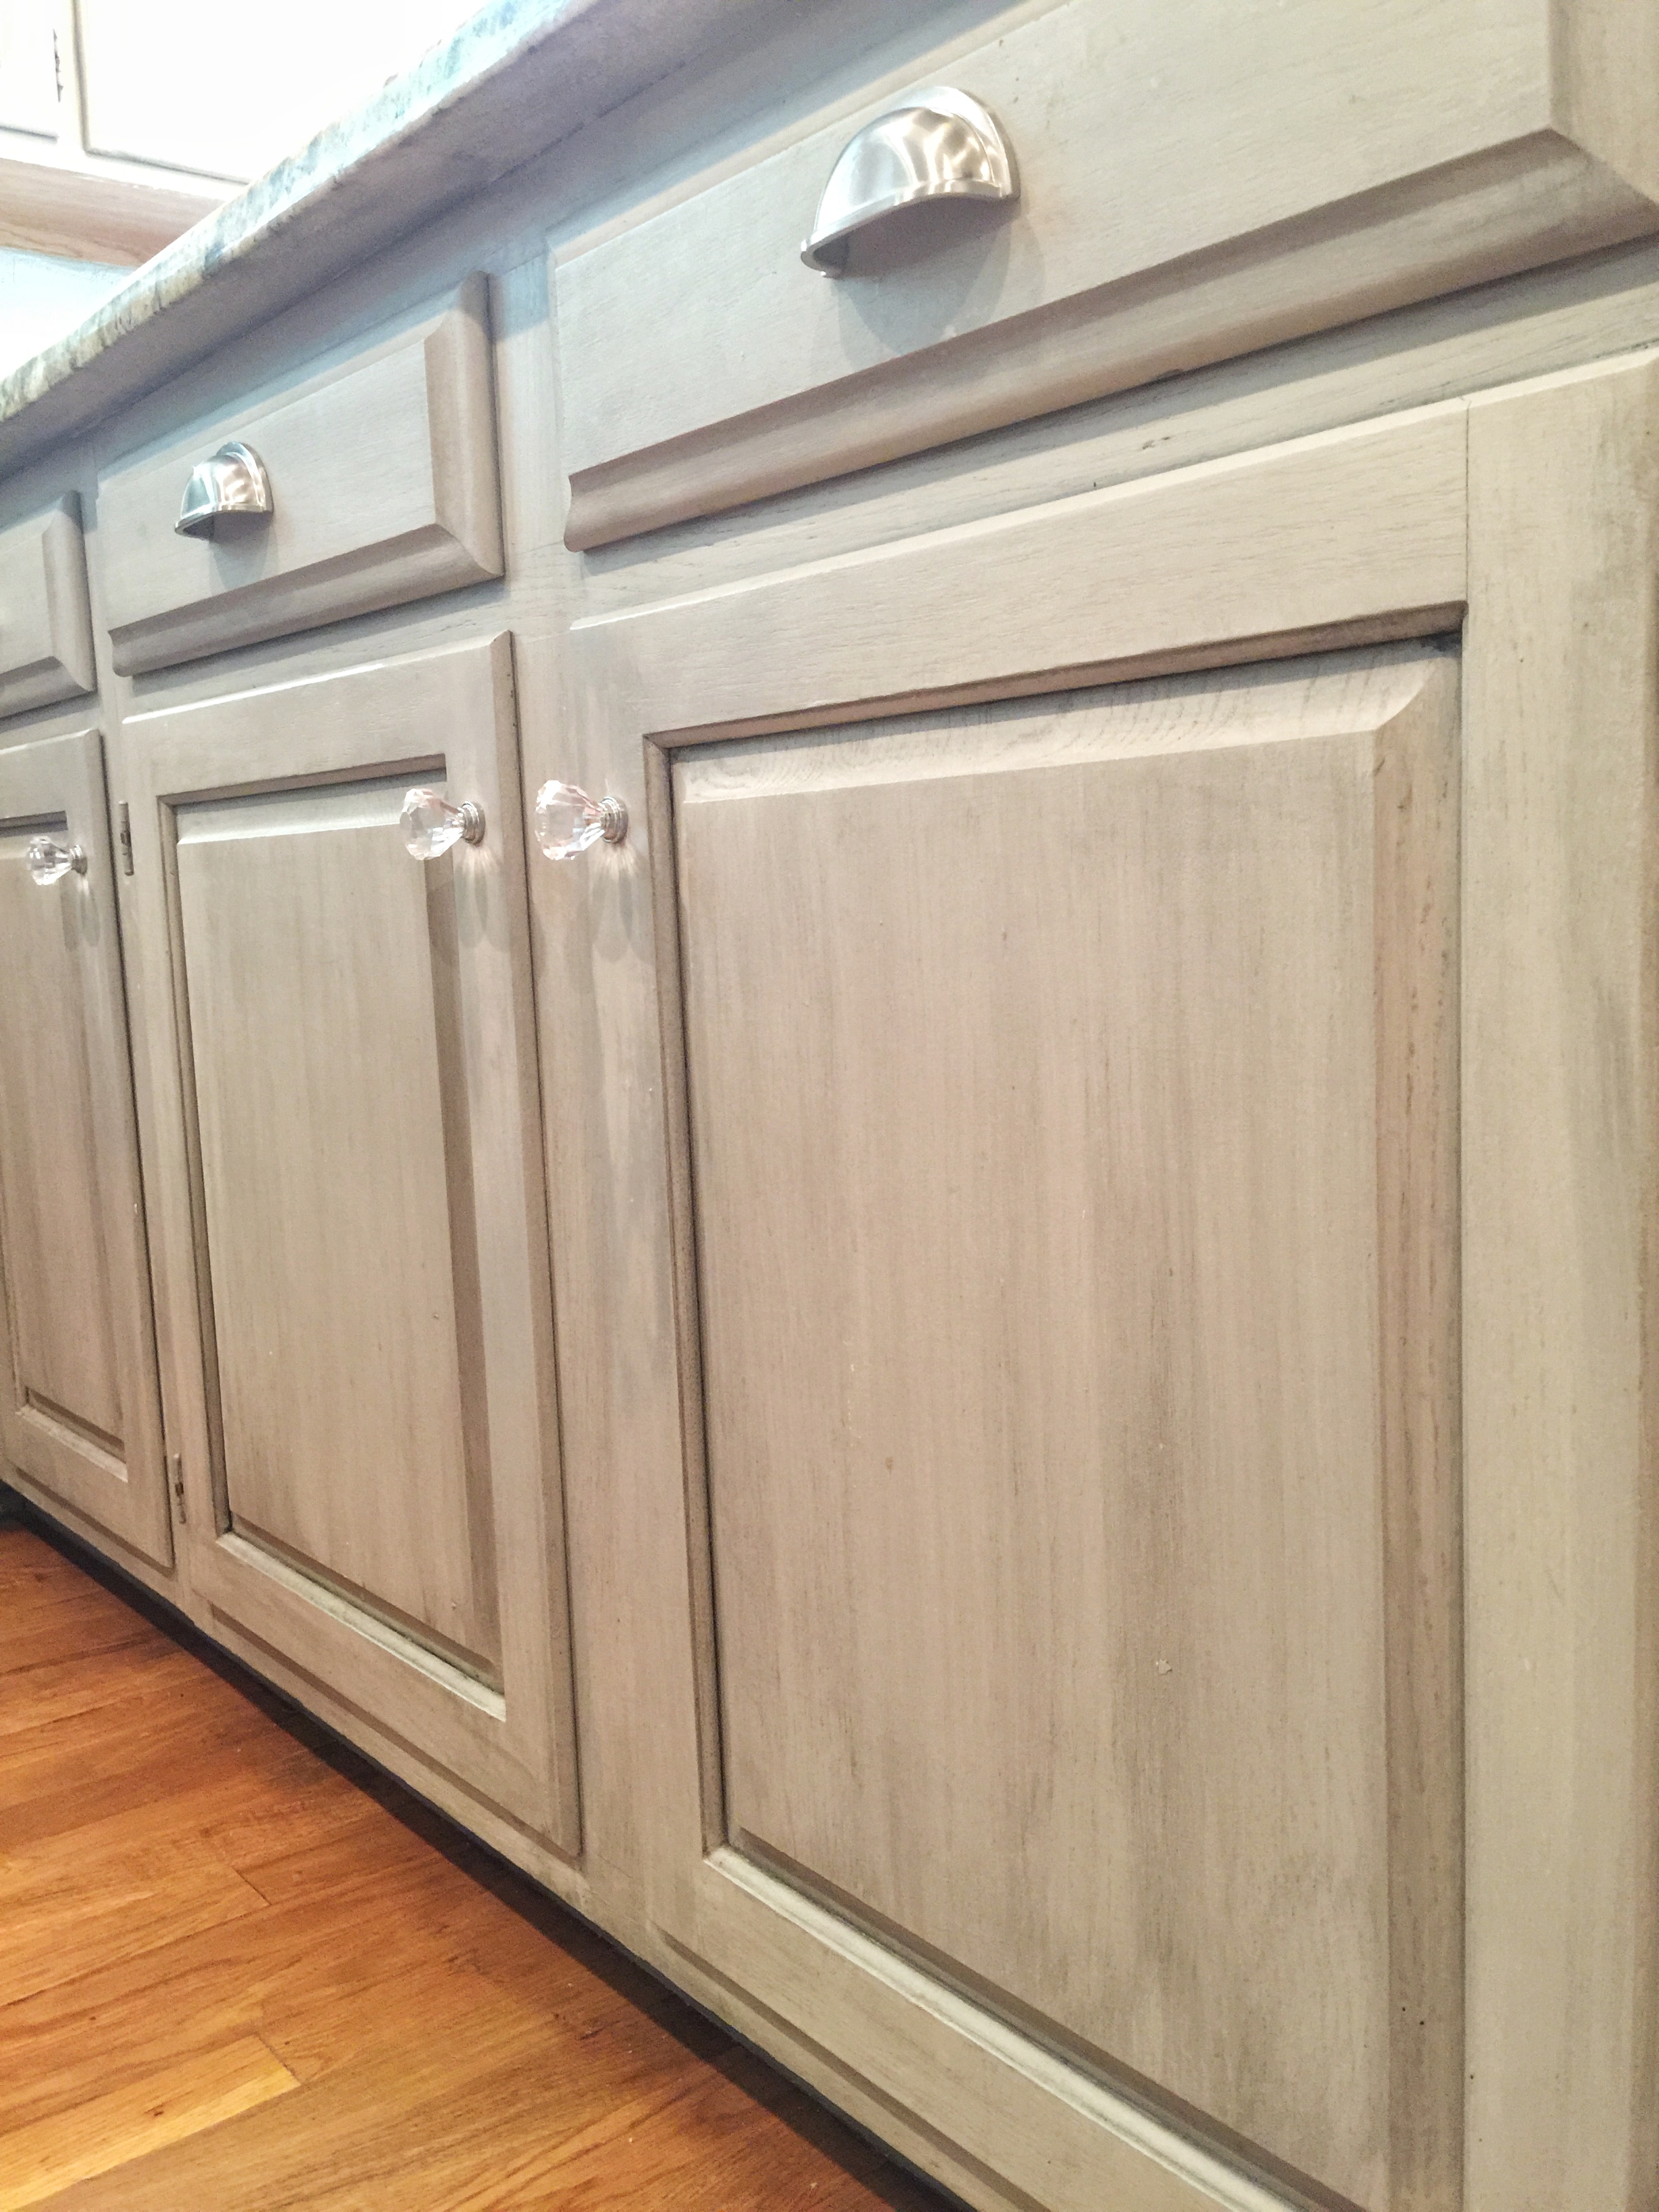 Light Gray Cabinets with a smokey all over glaze- Bella Tucker Decorative Finishes